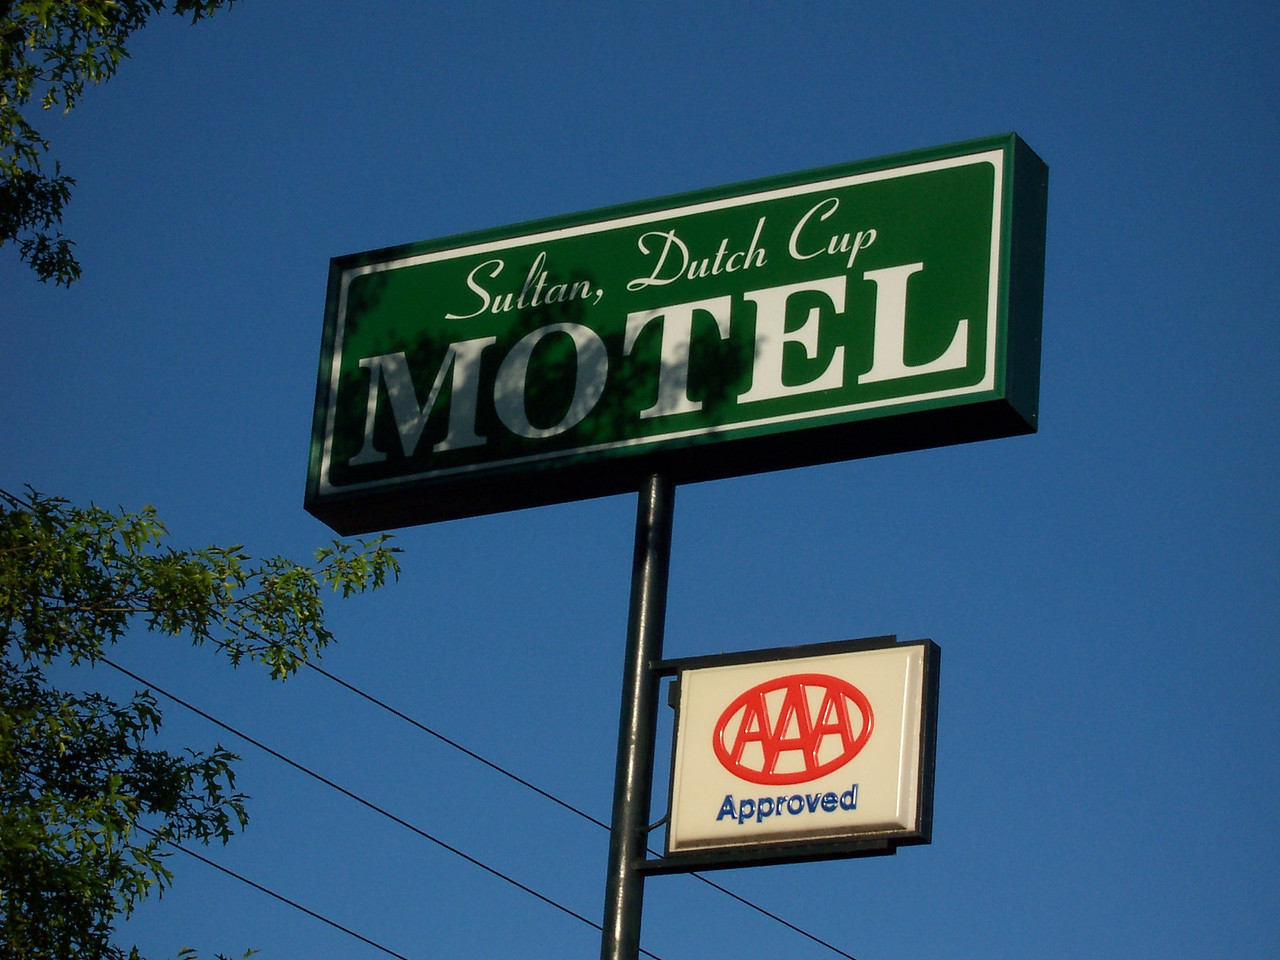 Dutch Cup, the motel we stayed at.